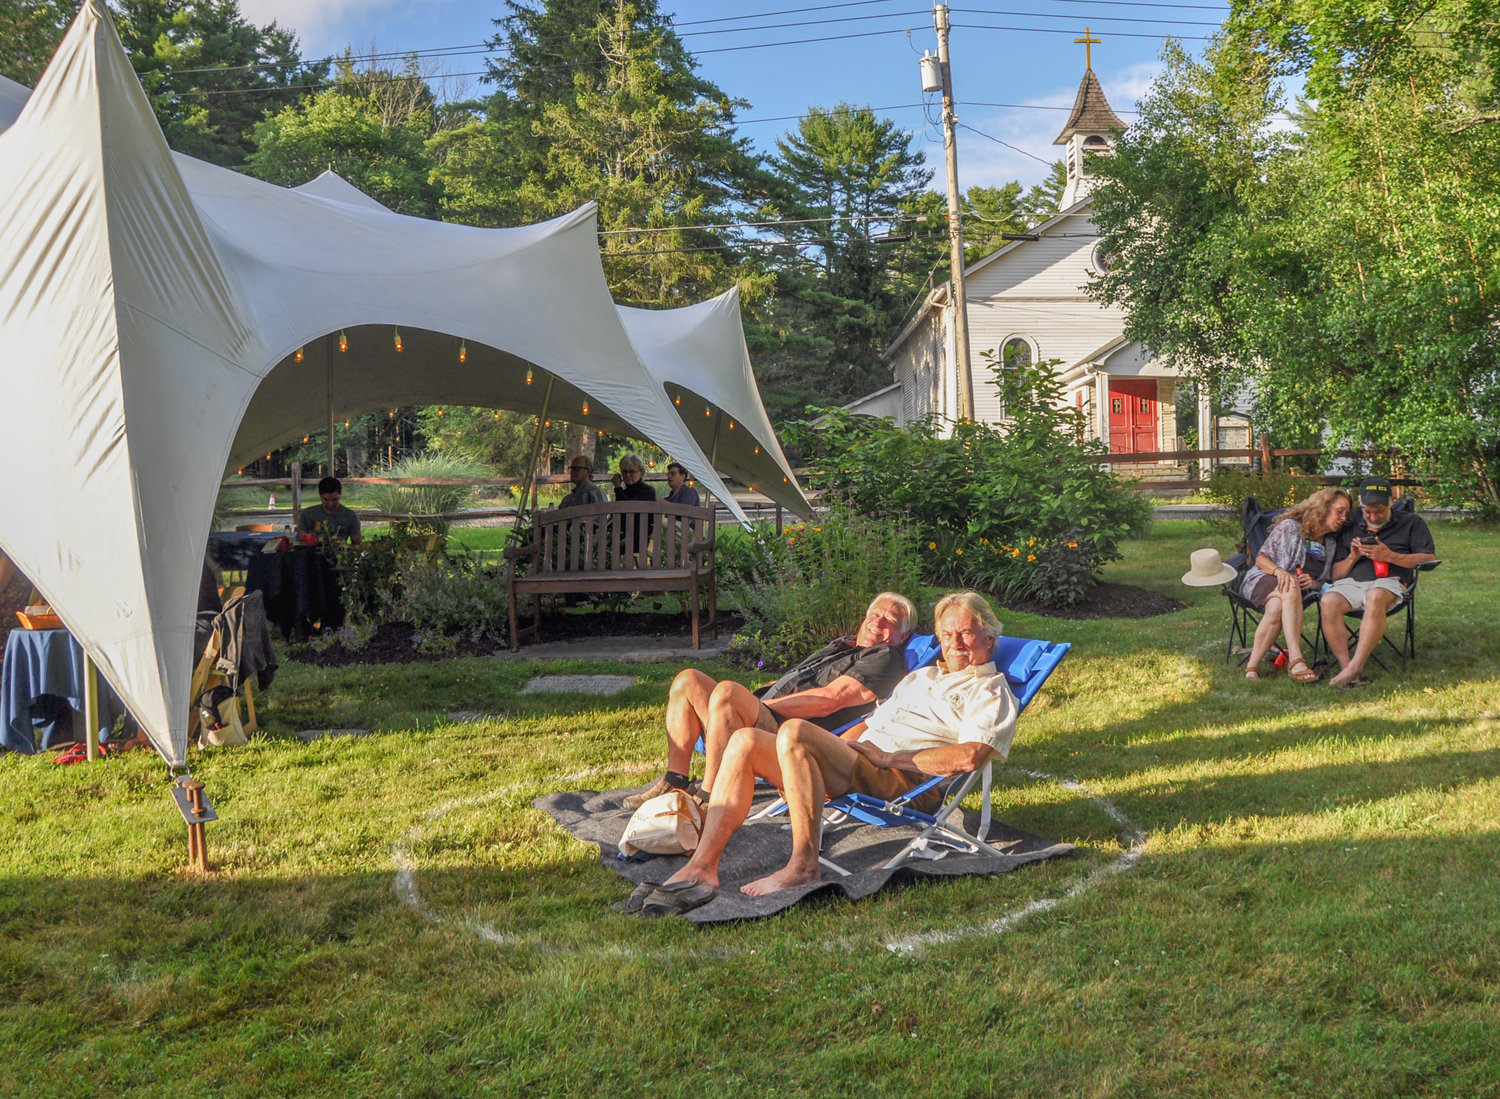 Safely distanced under tents and spaced apart in pairs or groups on the lawn, audience members were treated to a magical evening under the stars, serenaded by the truly gifted Nicholas Rodriguez in the garden of the Forestburgh Playhouse.